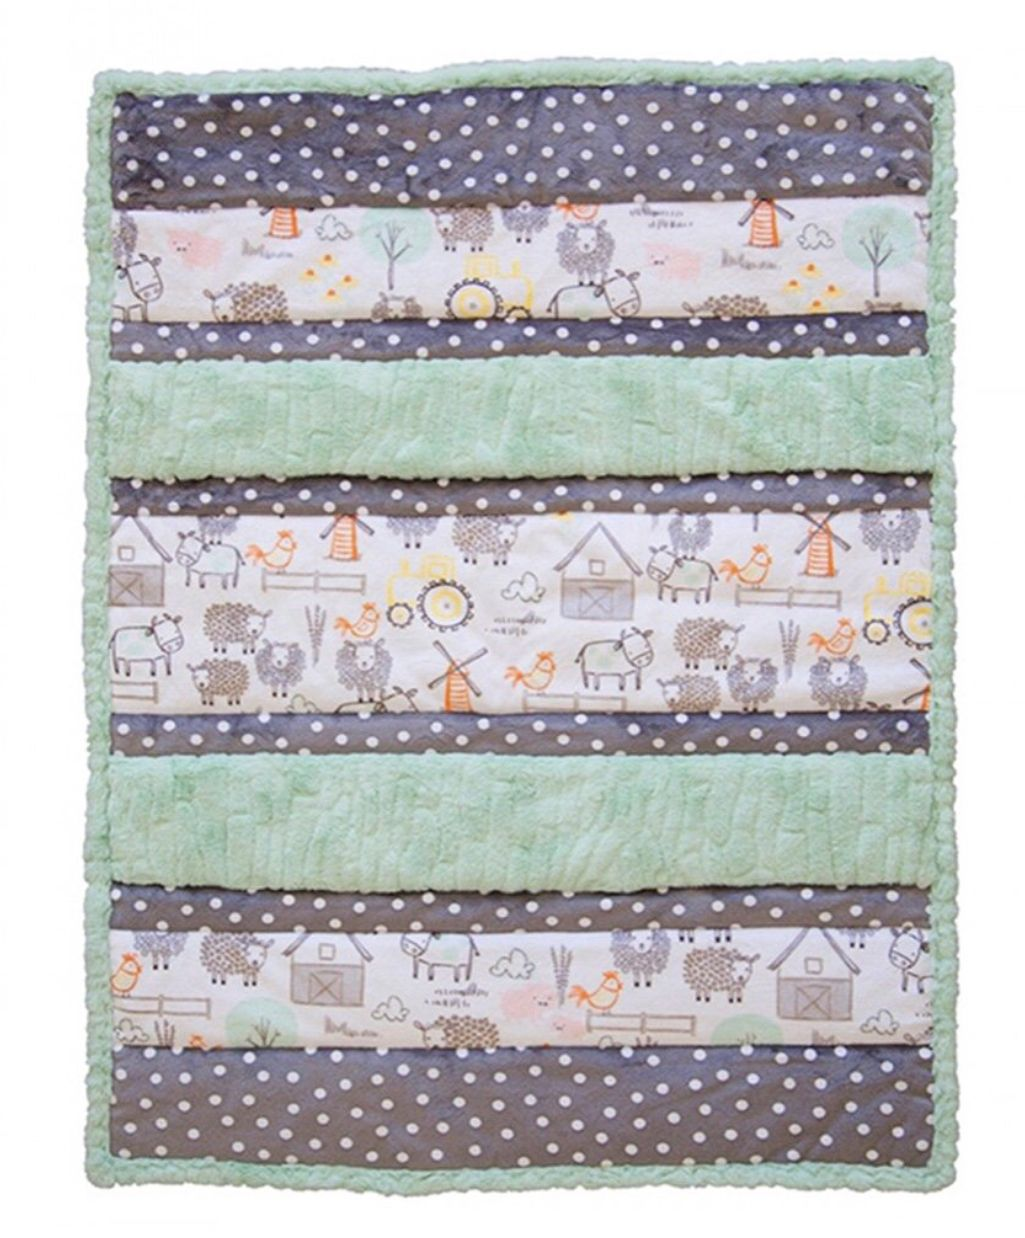 44 99 Bambino Cuddle Kit Hay There Shannon Fabrics Minky Fabric Complete Kit Includes Minky Fabric For Top Backing Bindin Quilts Minky Fabric Quilt Kits